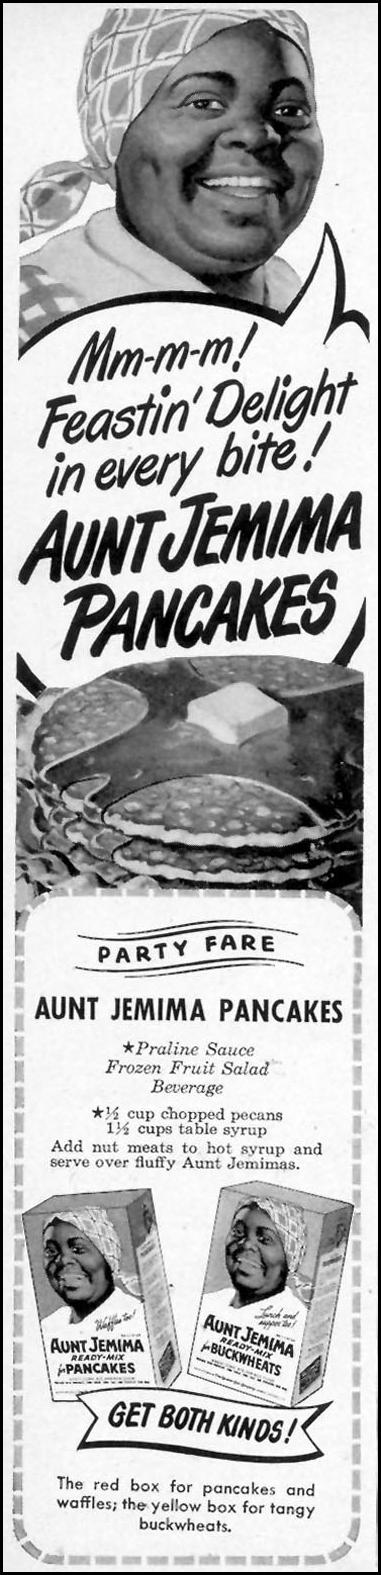 AUNT JEMIMA READY-MIX FOR PANCAKES WOMAN'S DAY 11/01/1948 p. 76